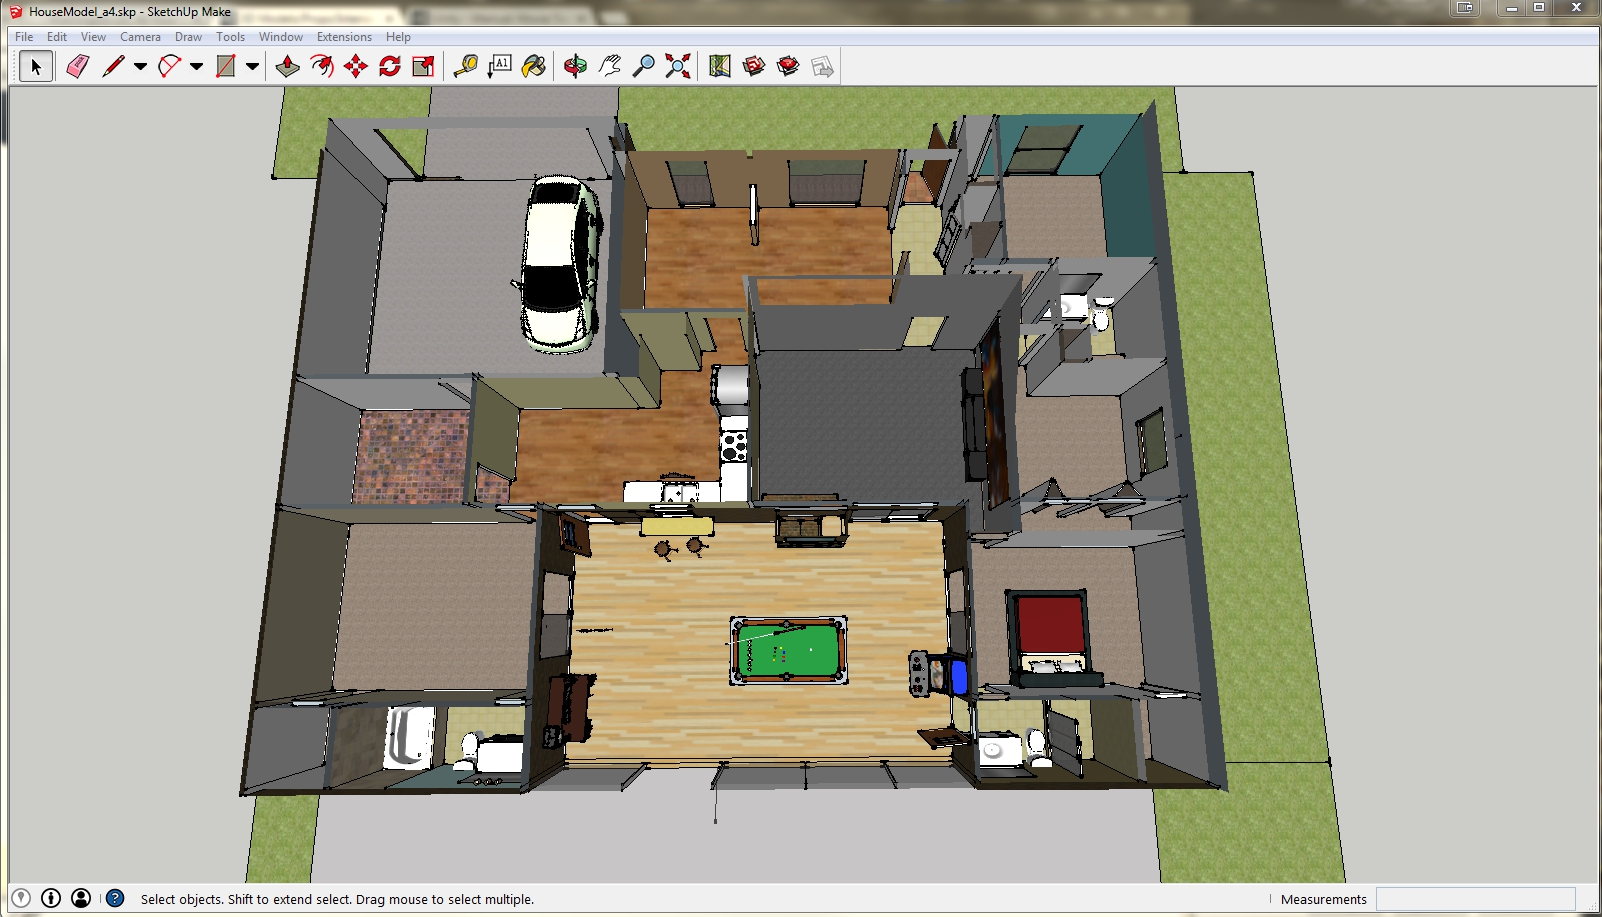 Make a 3d model of my house